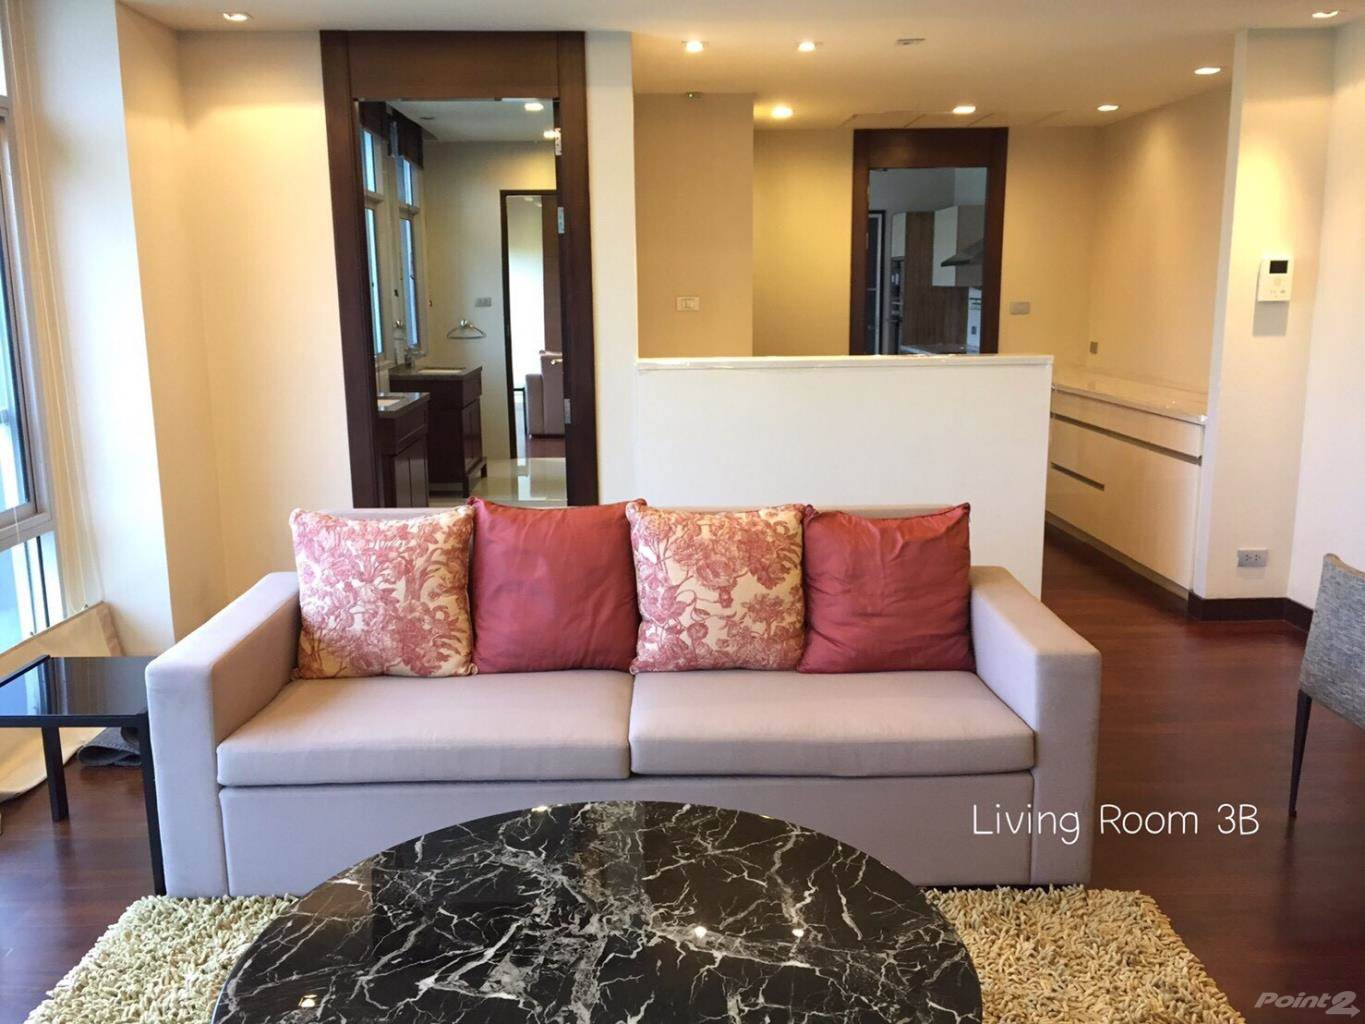 Residential For Rent in Lowrise Apartment, Sathon, Bangkok Metropolis   , Thailand